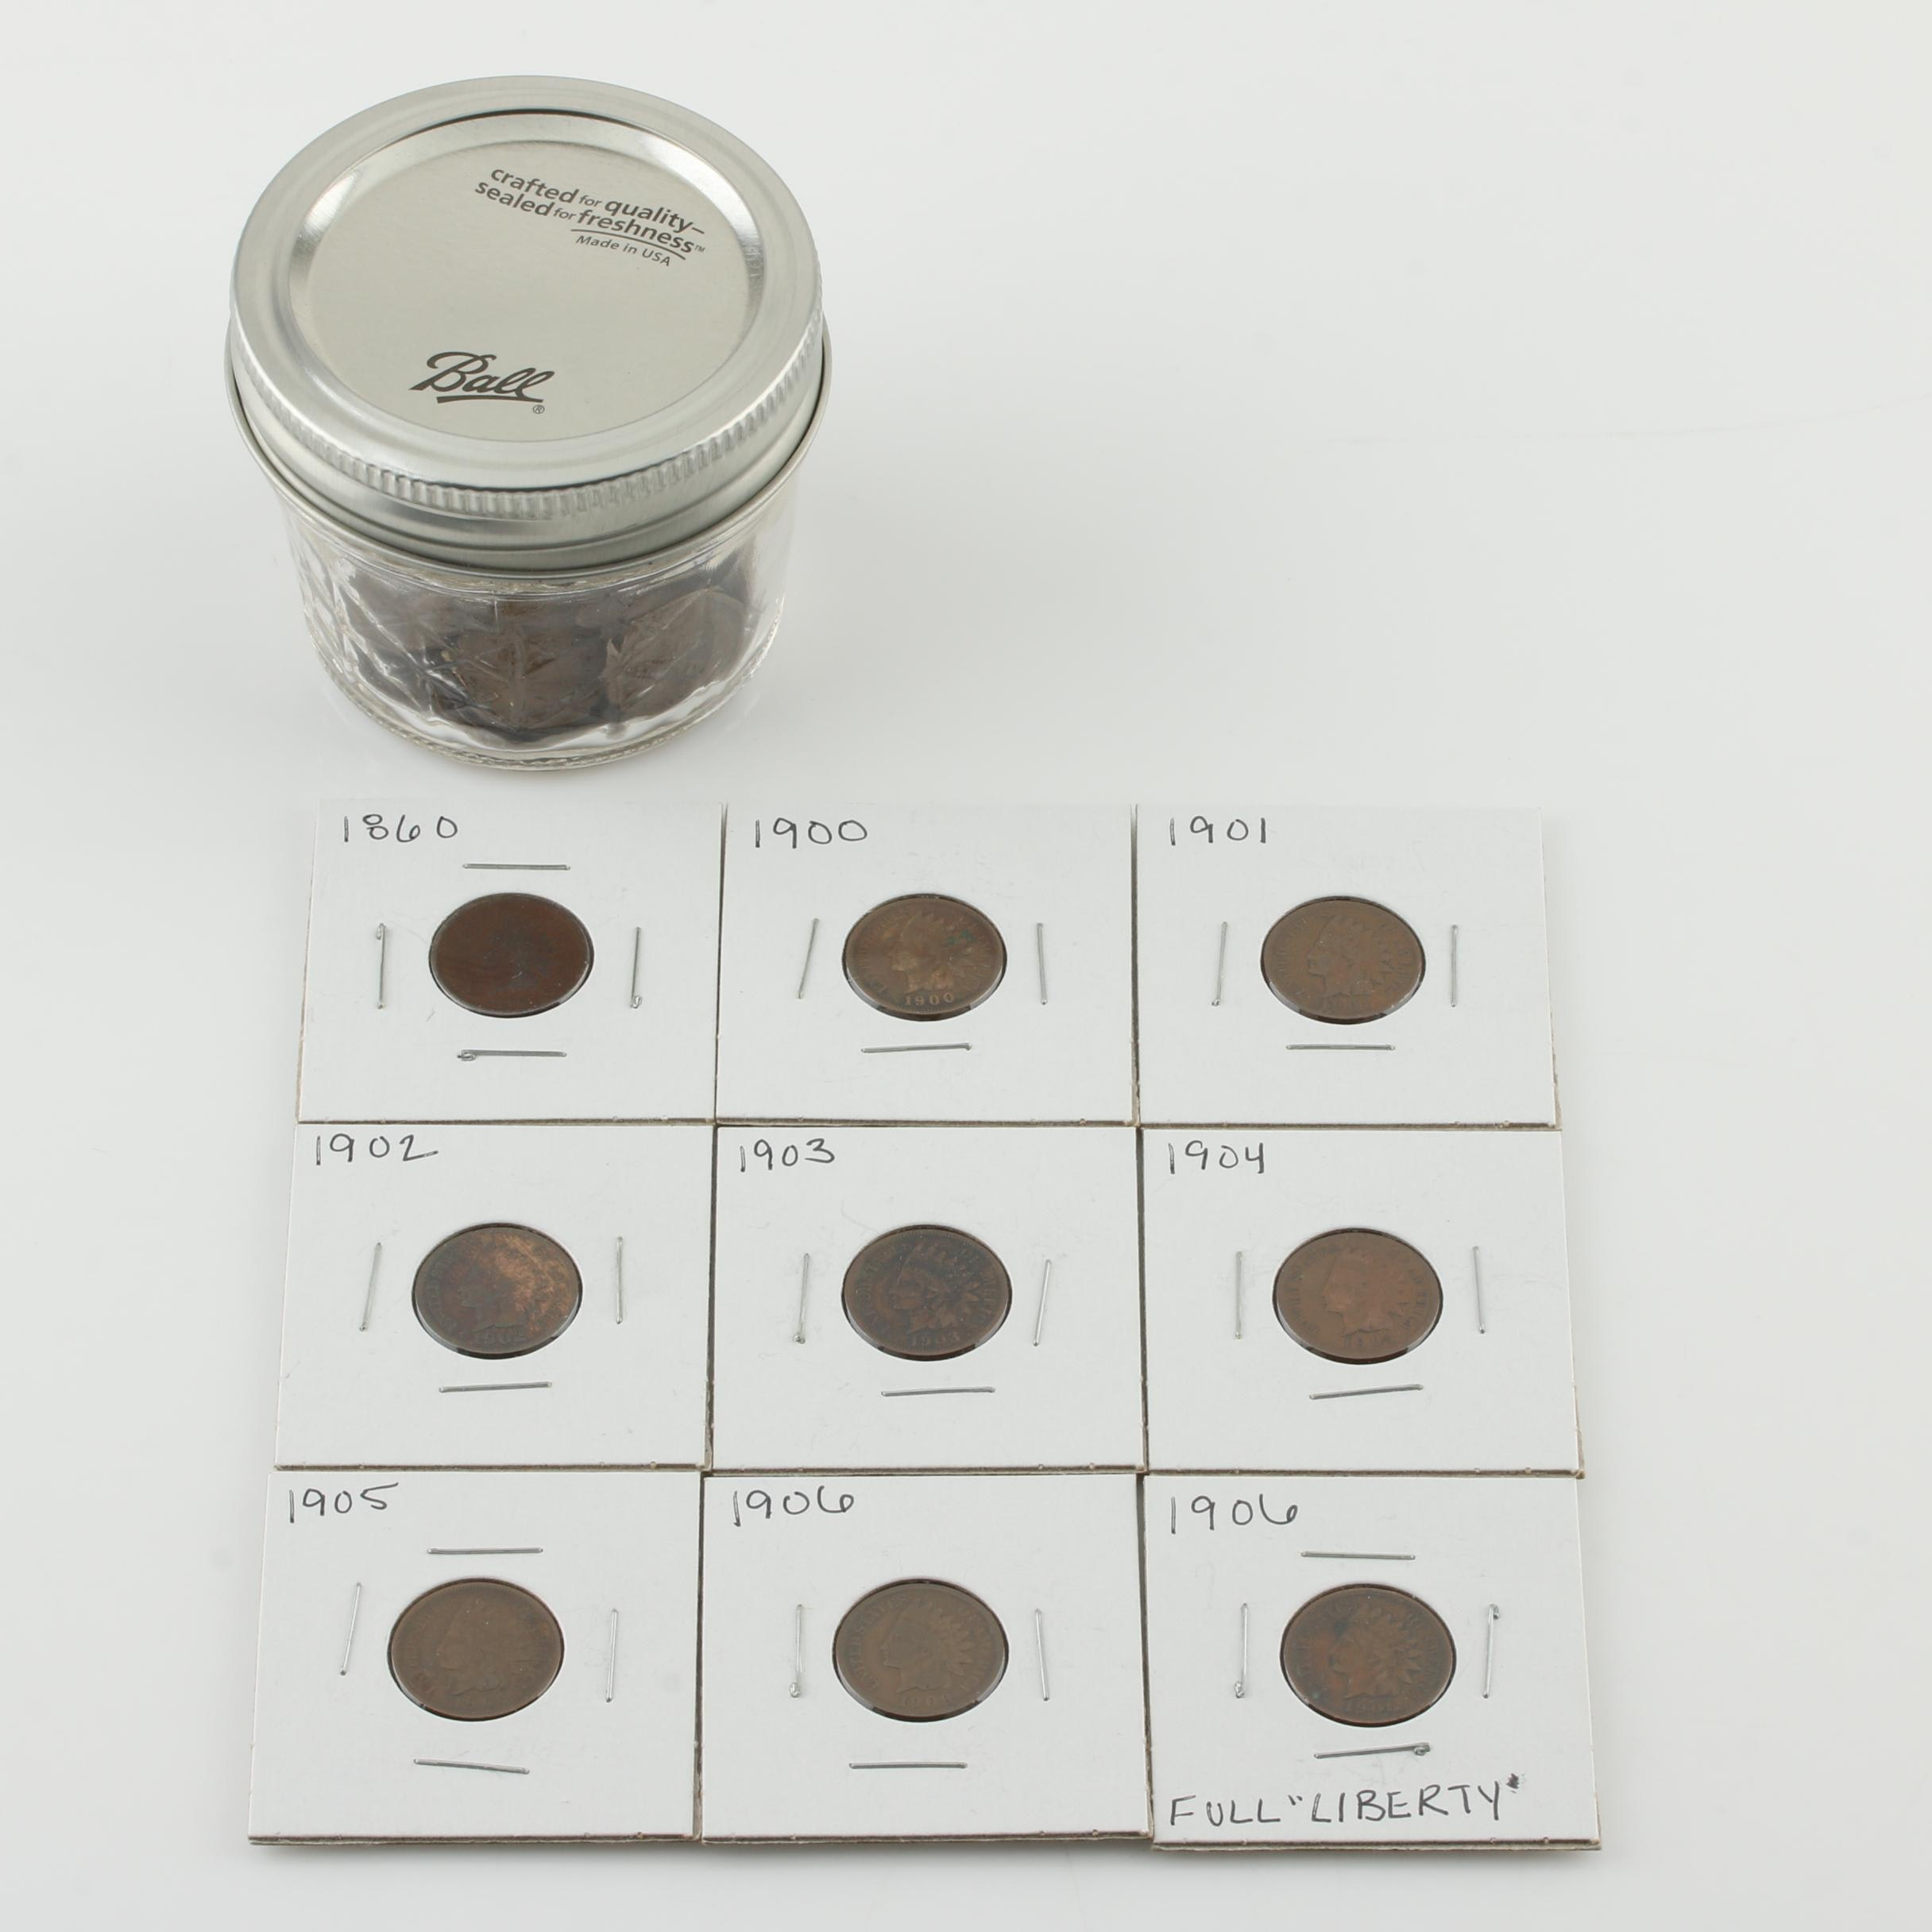 Group of Over 50 Indian Head Cents from 1860 to 1907